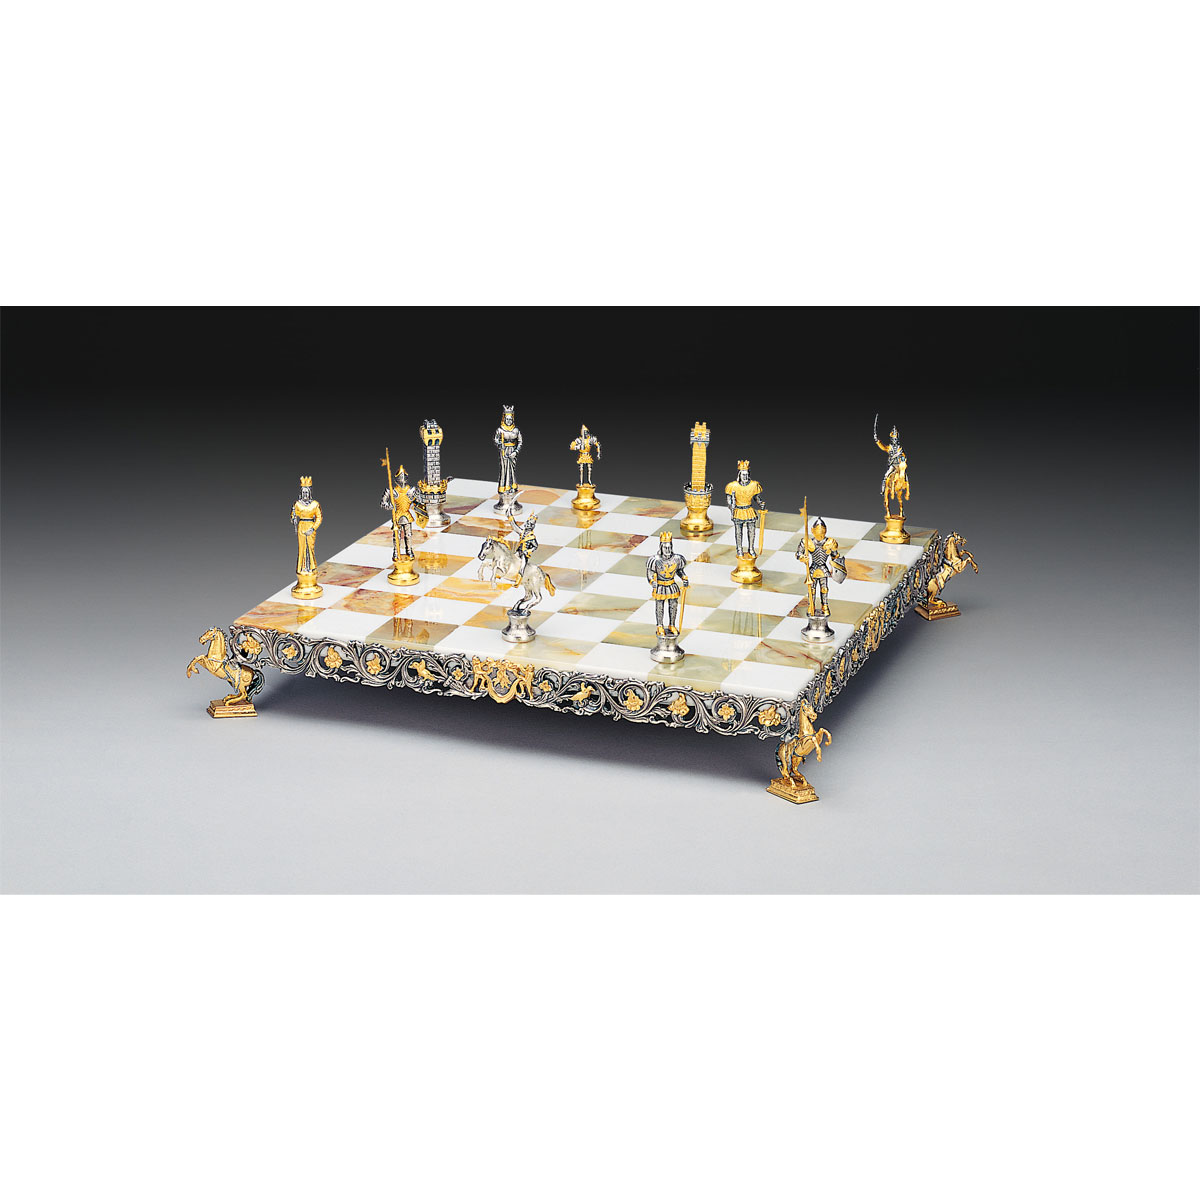 Carlomagno (Charlemagne) Gold and Silver Theme Chess Board